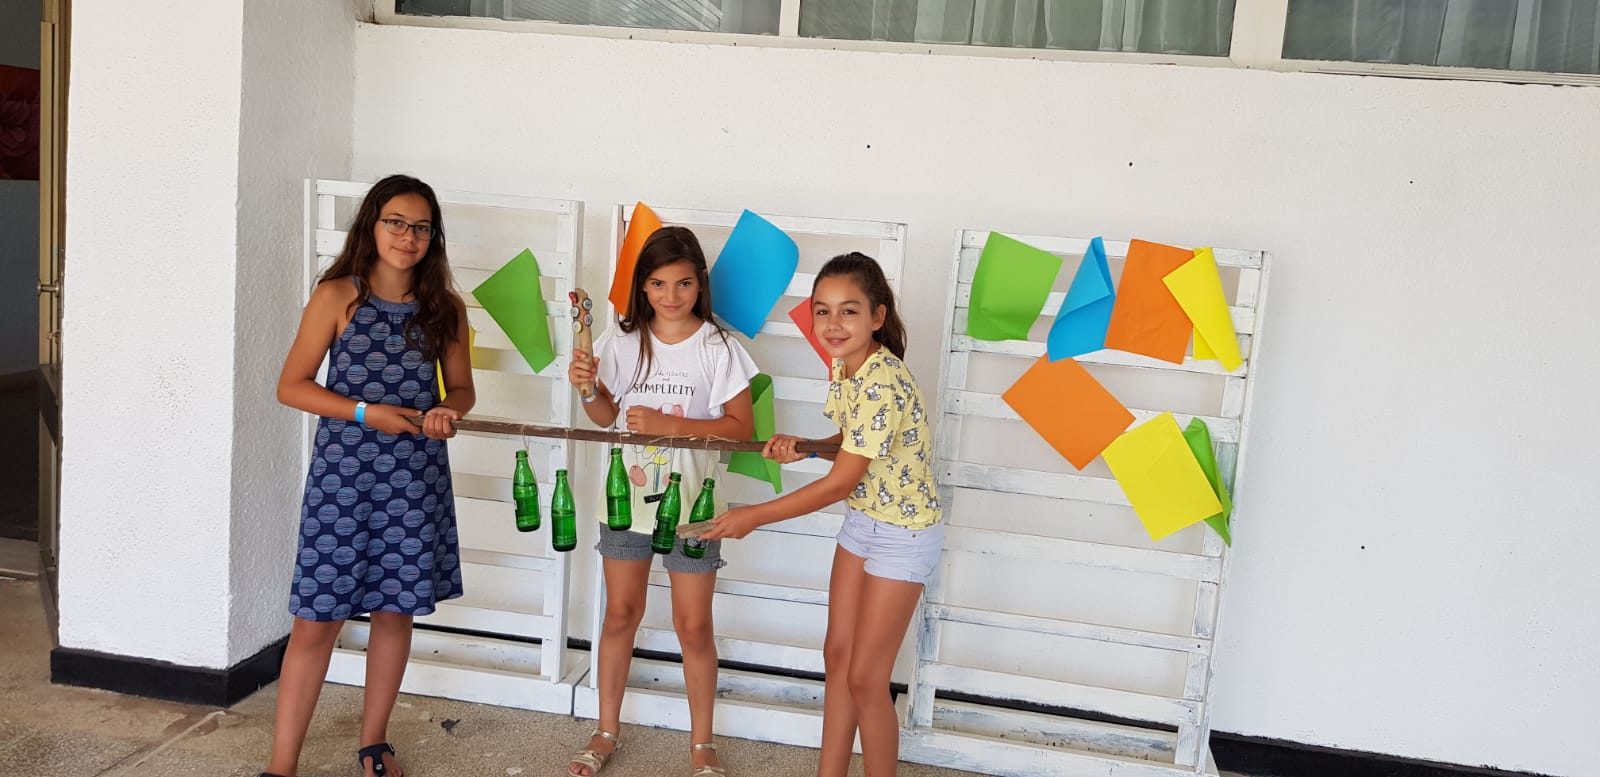 Z camp, Day 14 - music workshop - 3 girls show a hand-made musical instrument from tied, hanging, glass bottles